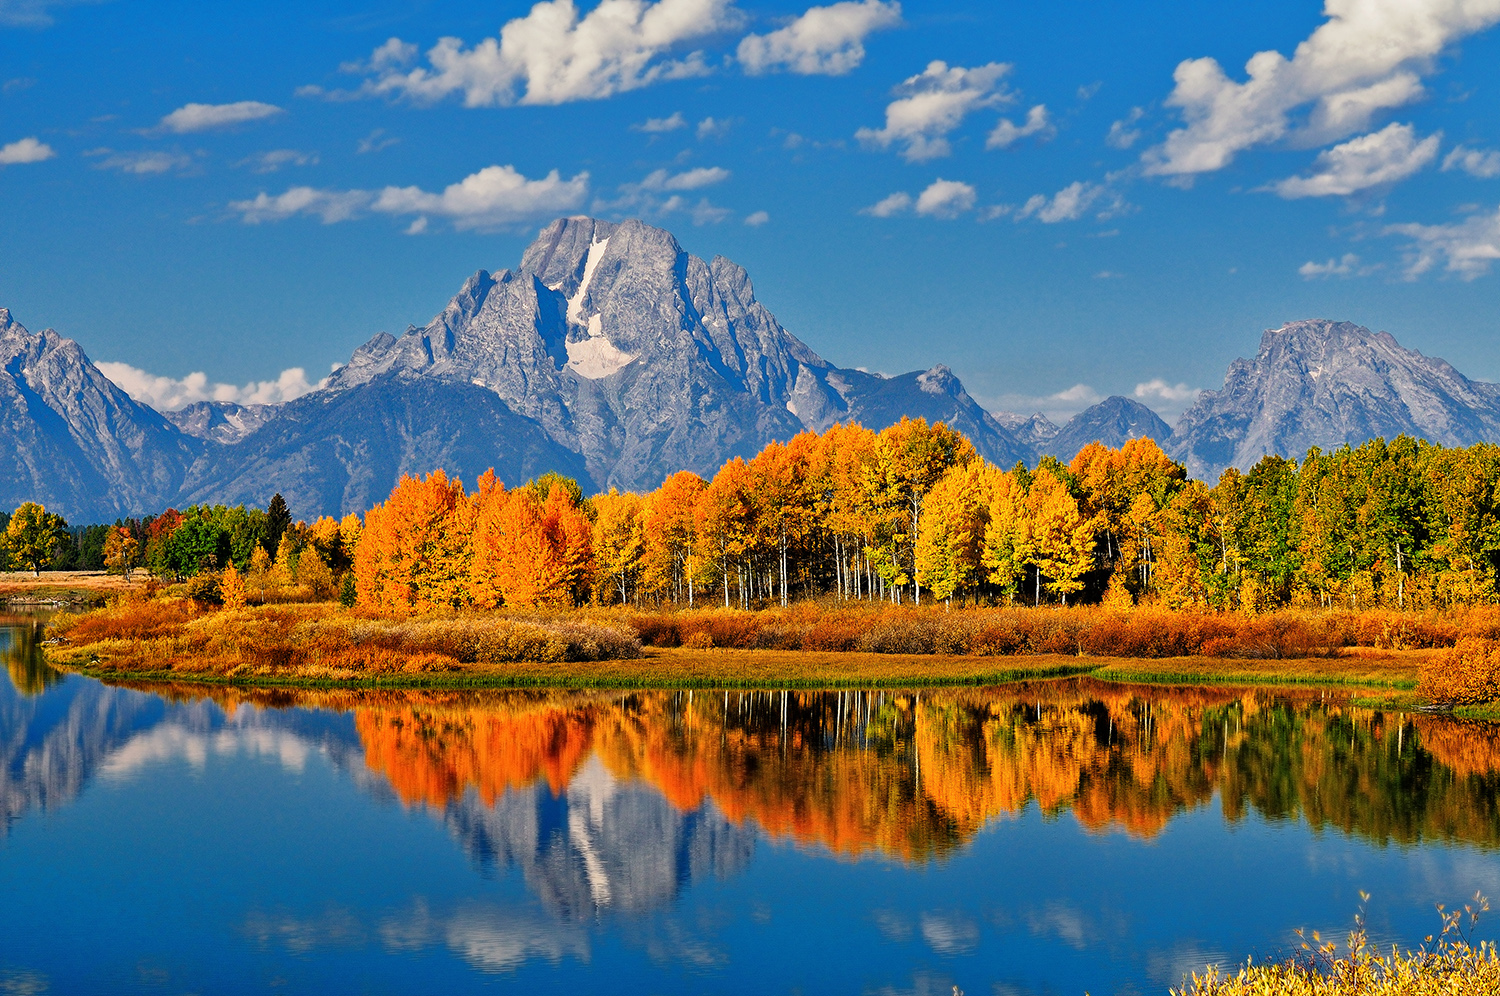 Autumn Peak at Oxbow Bend